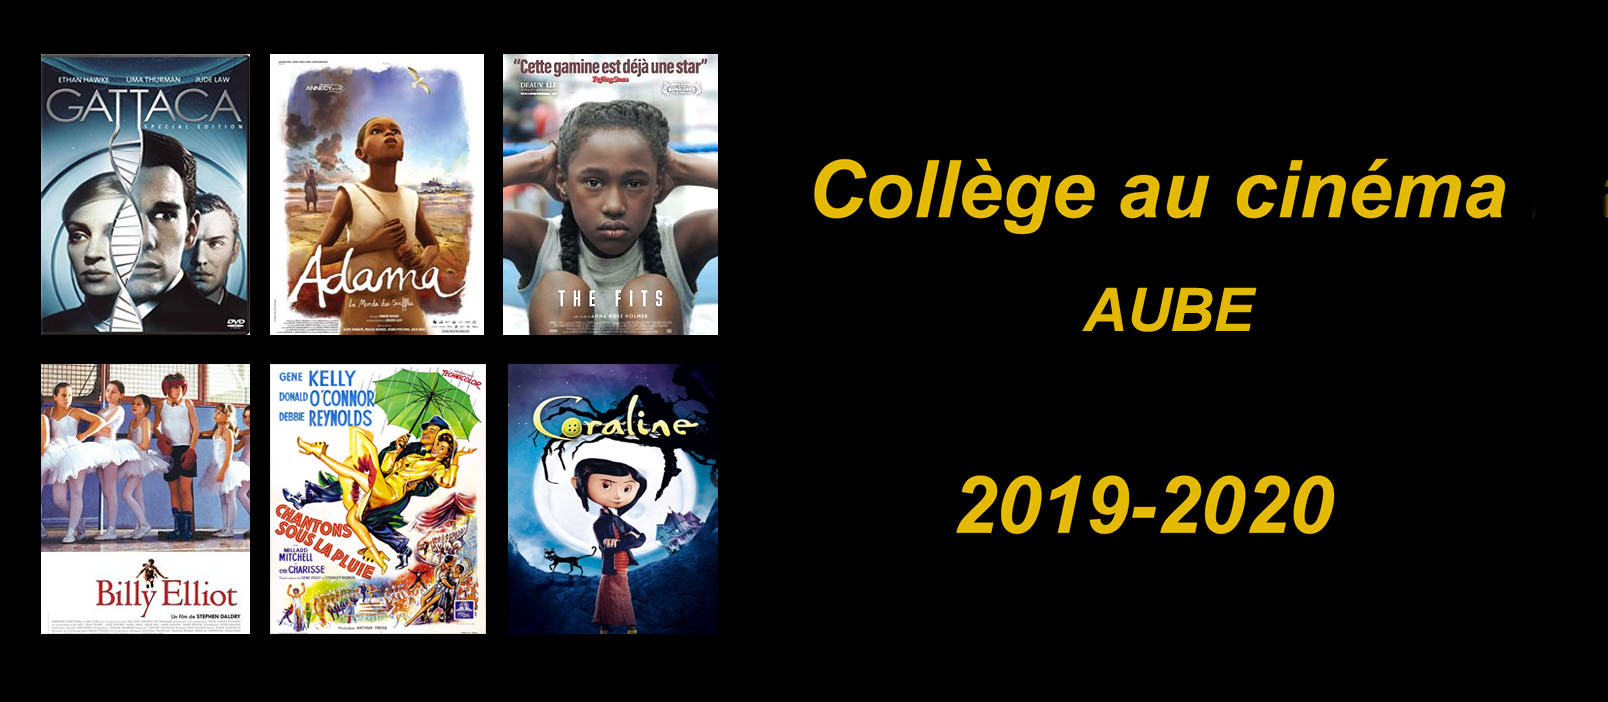 college aucinema aube